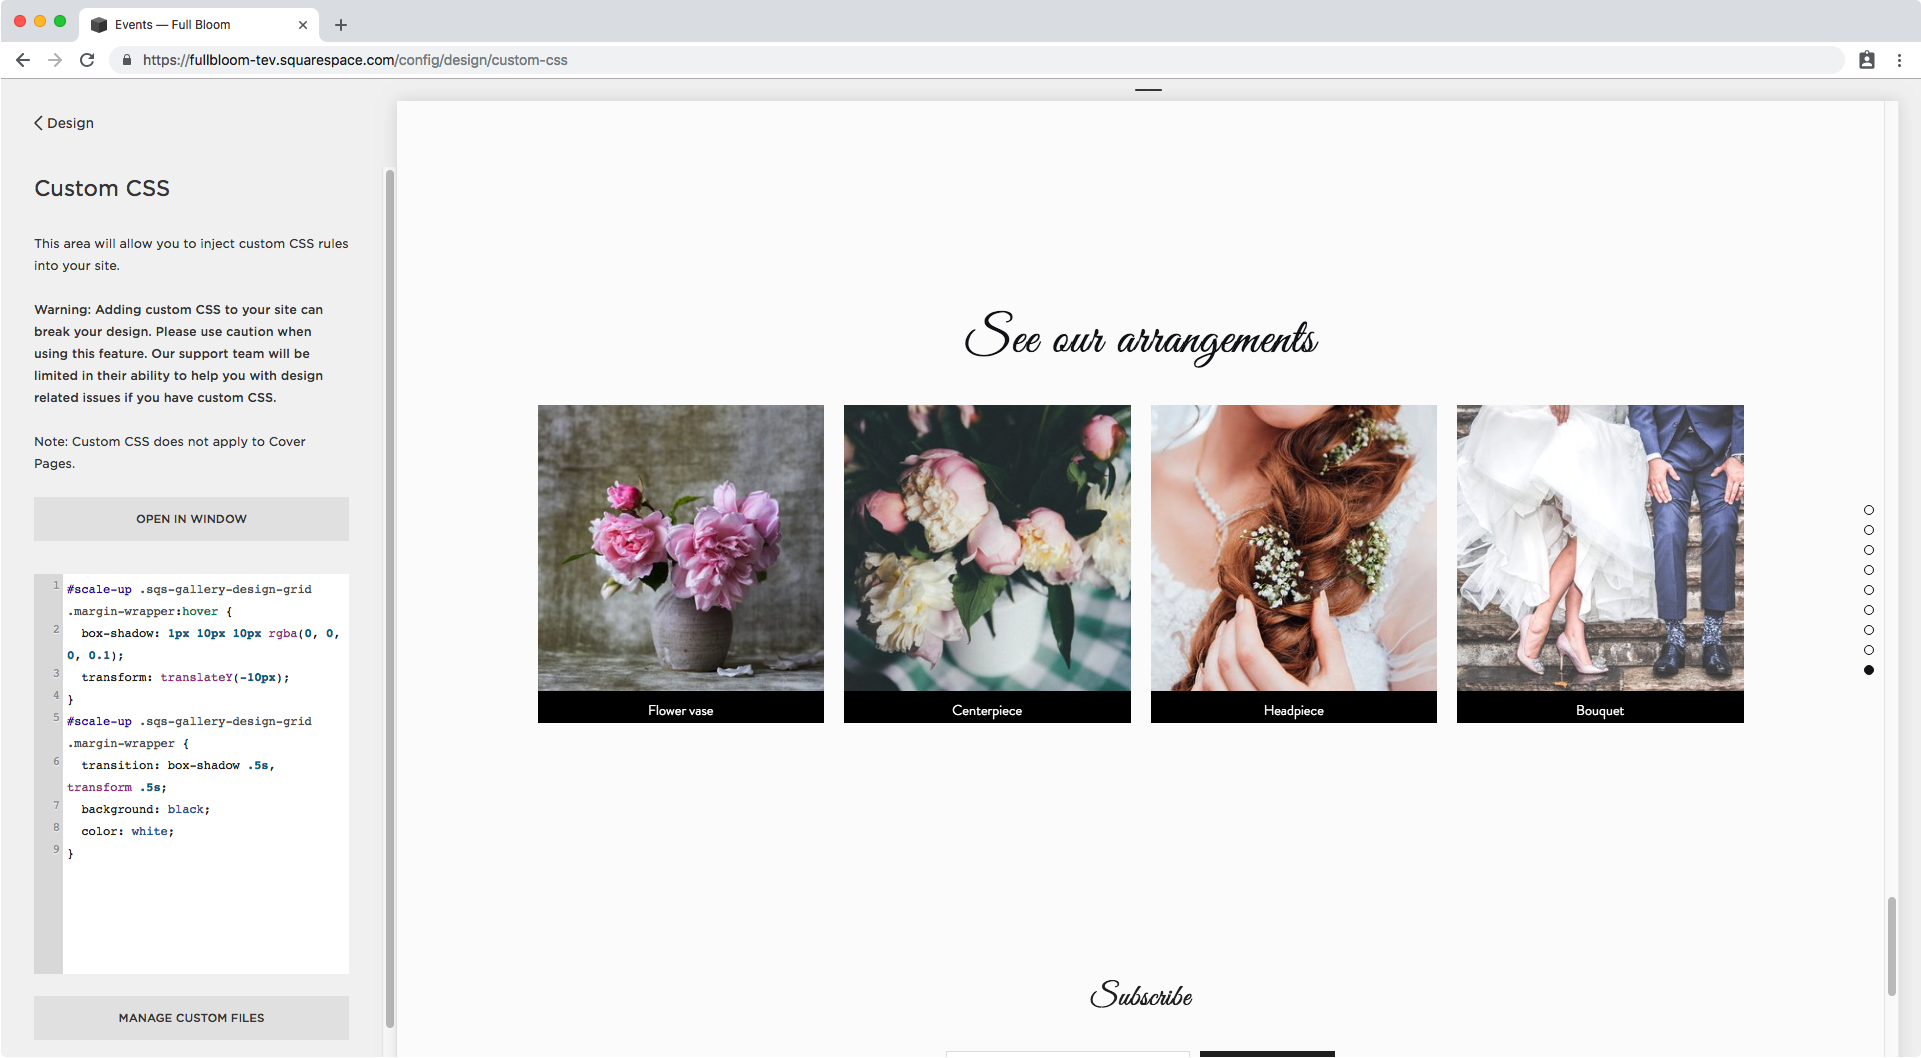 22. Styling the title of gallery blocks in Squarespace.png